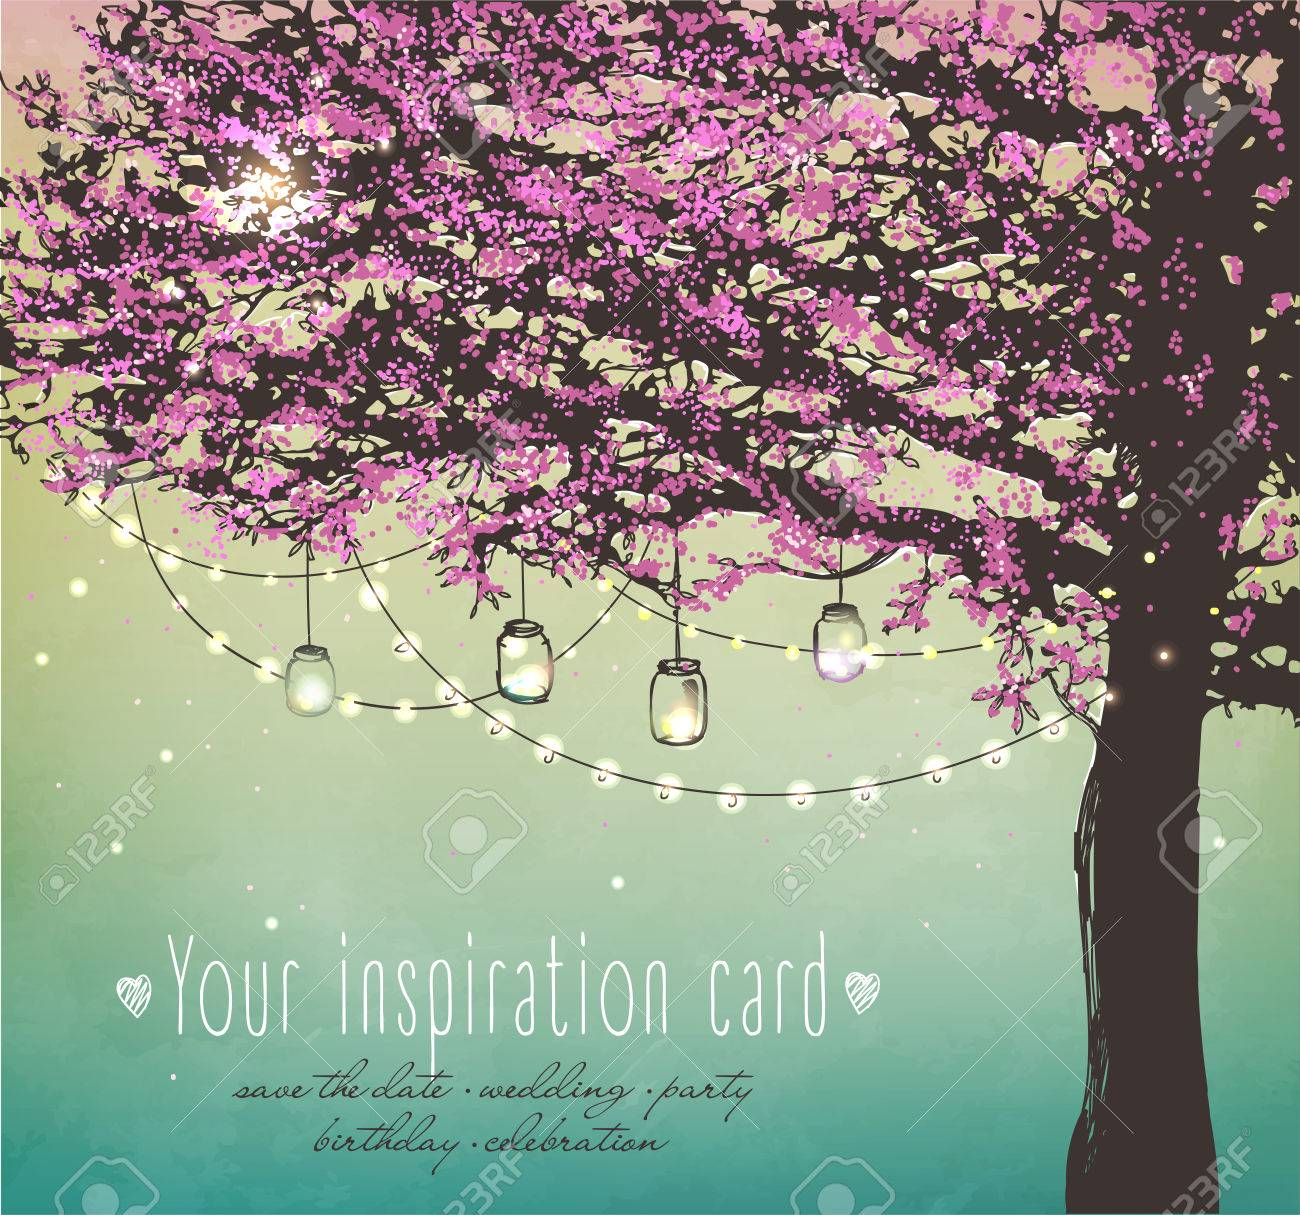 pink tree with decorative lights for party. Garden party invitation. Inspiration card for wedding, date, birthday, tea party - 52799738